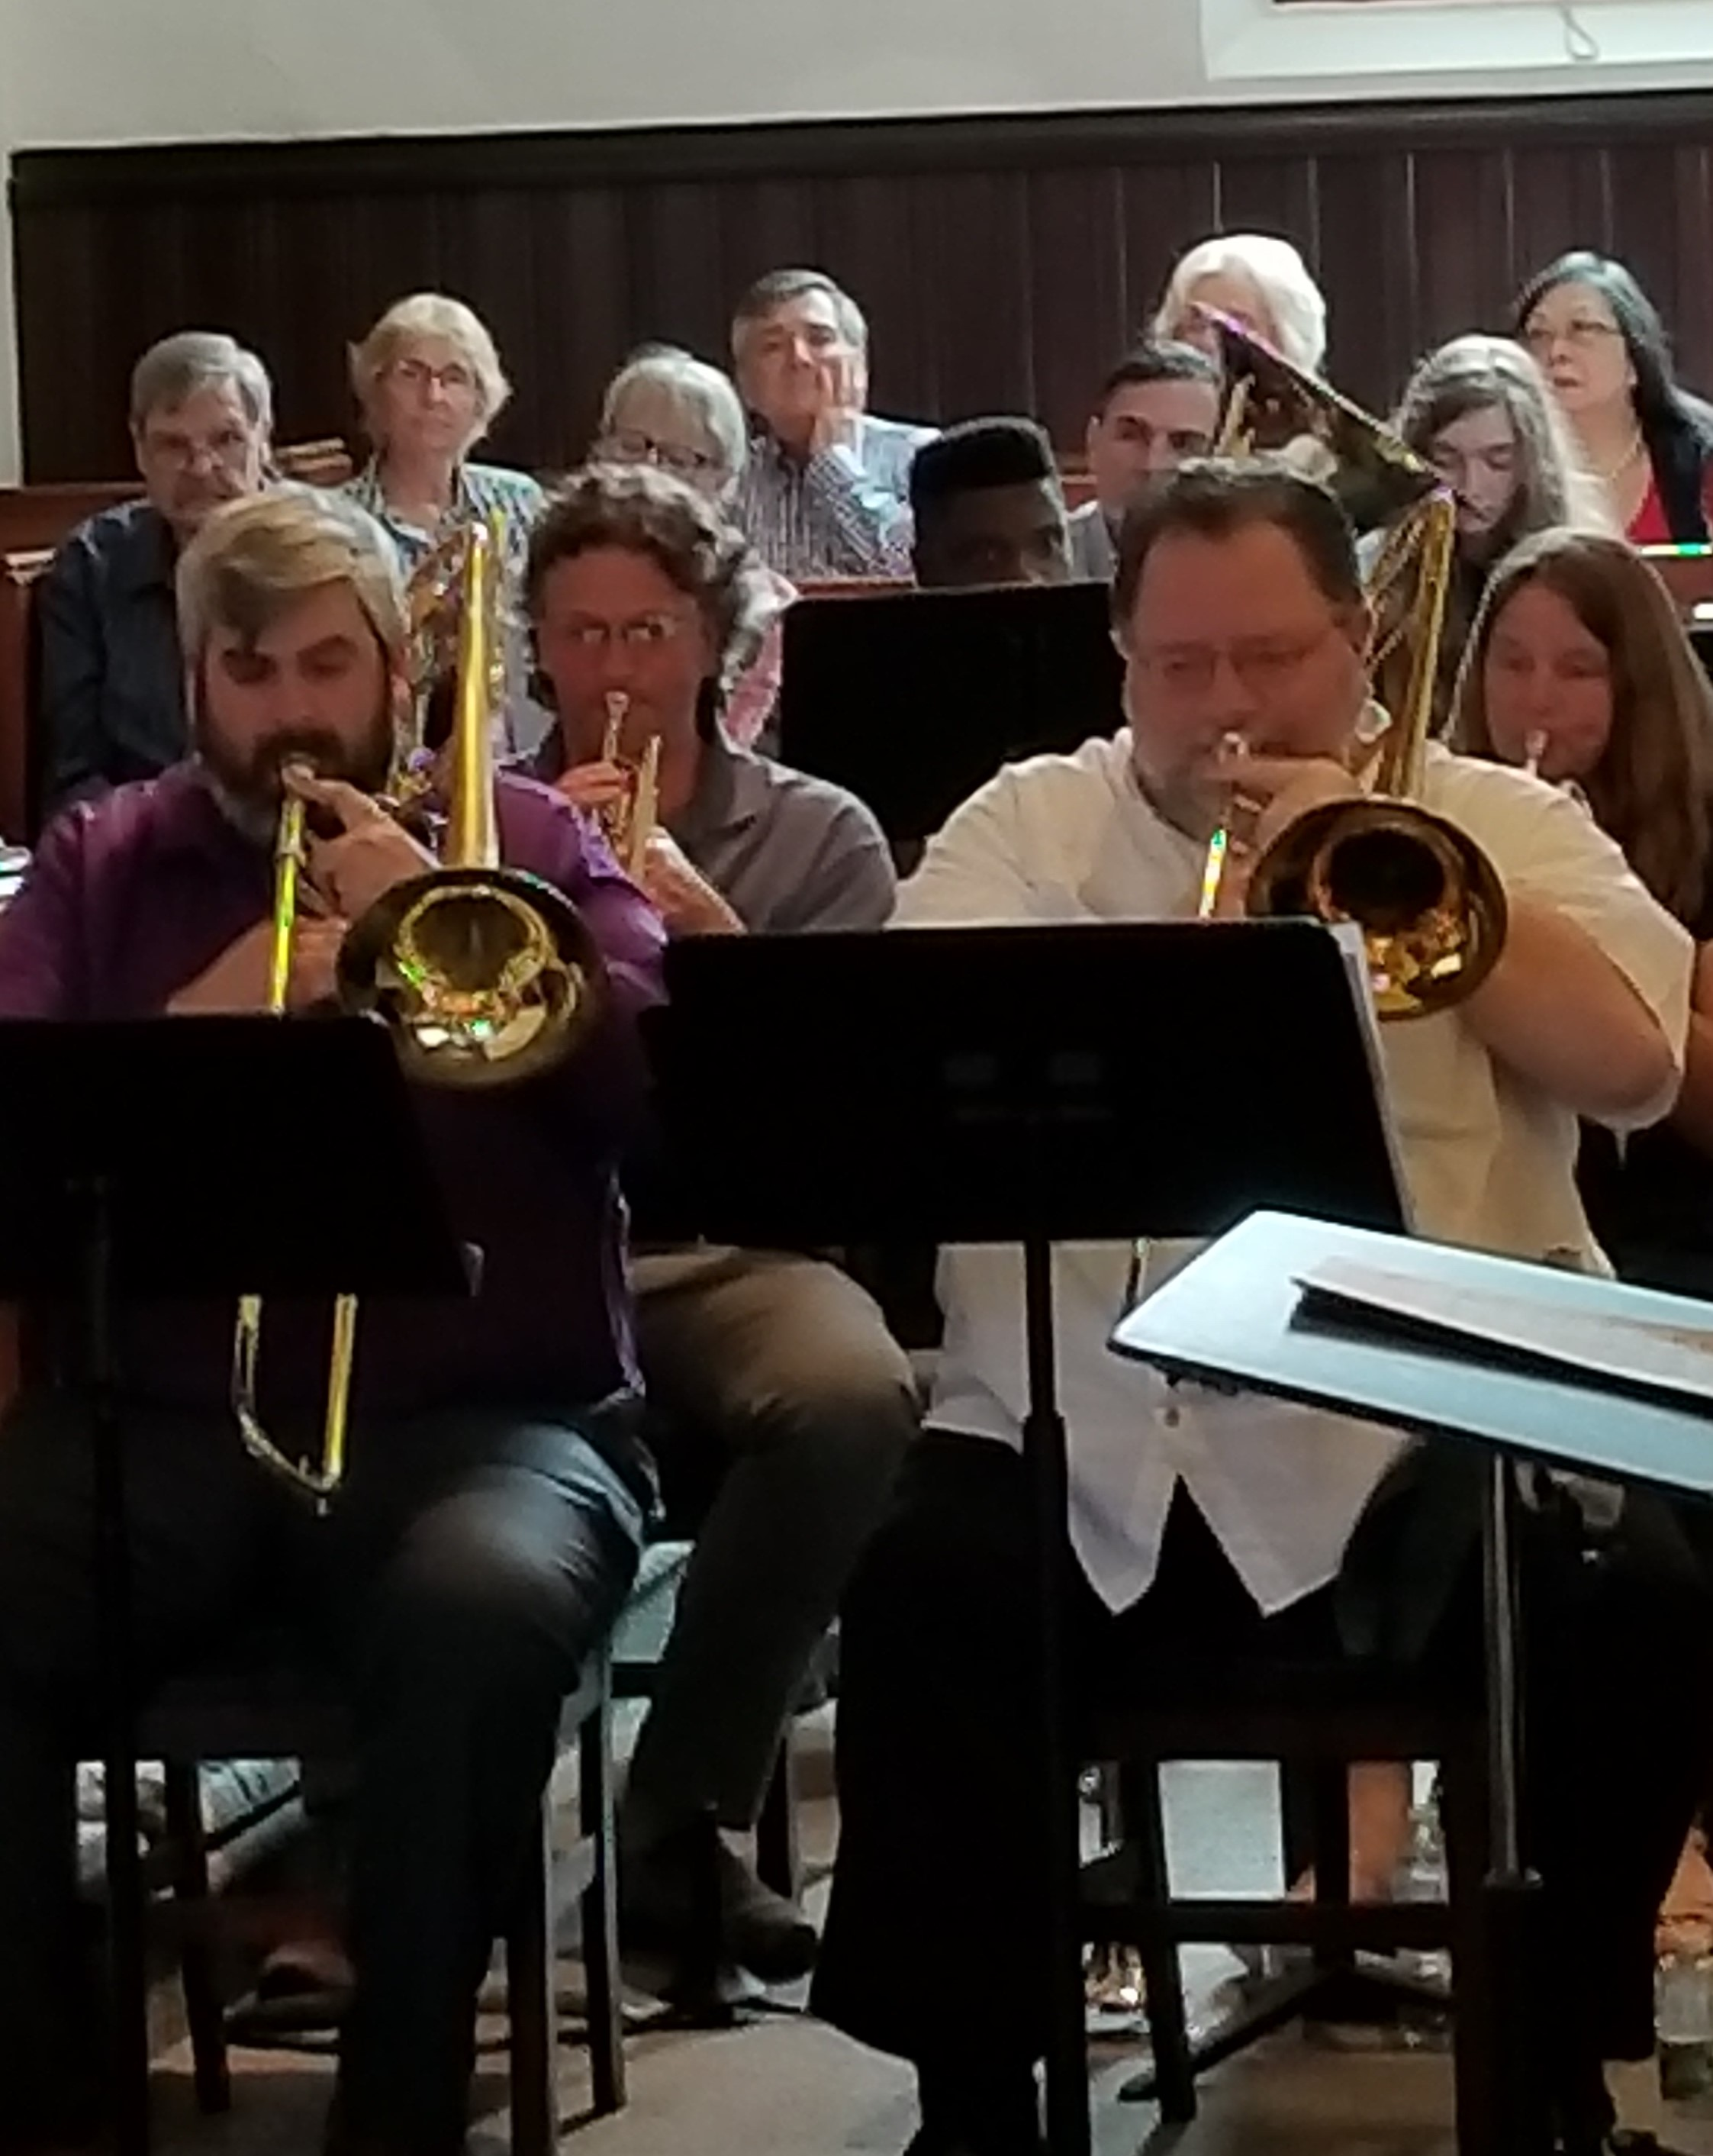 Instrumental Music - At SUMC we encourage instrumentalists in the congregation to share their gifts in worship as they feel comfortable. There are often opportunities to perform in an ensemble or as a soloist. New instrumentalists are always welcome!Contact Bridget for more information.